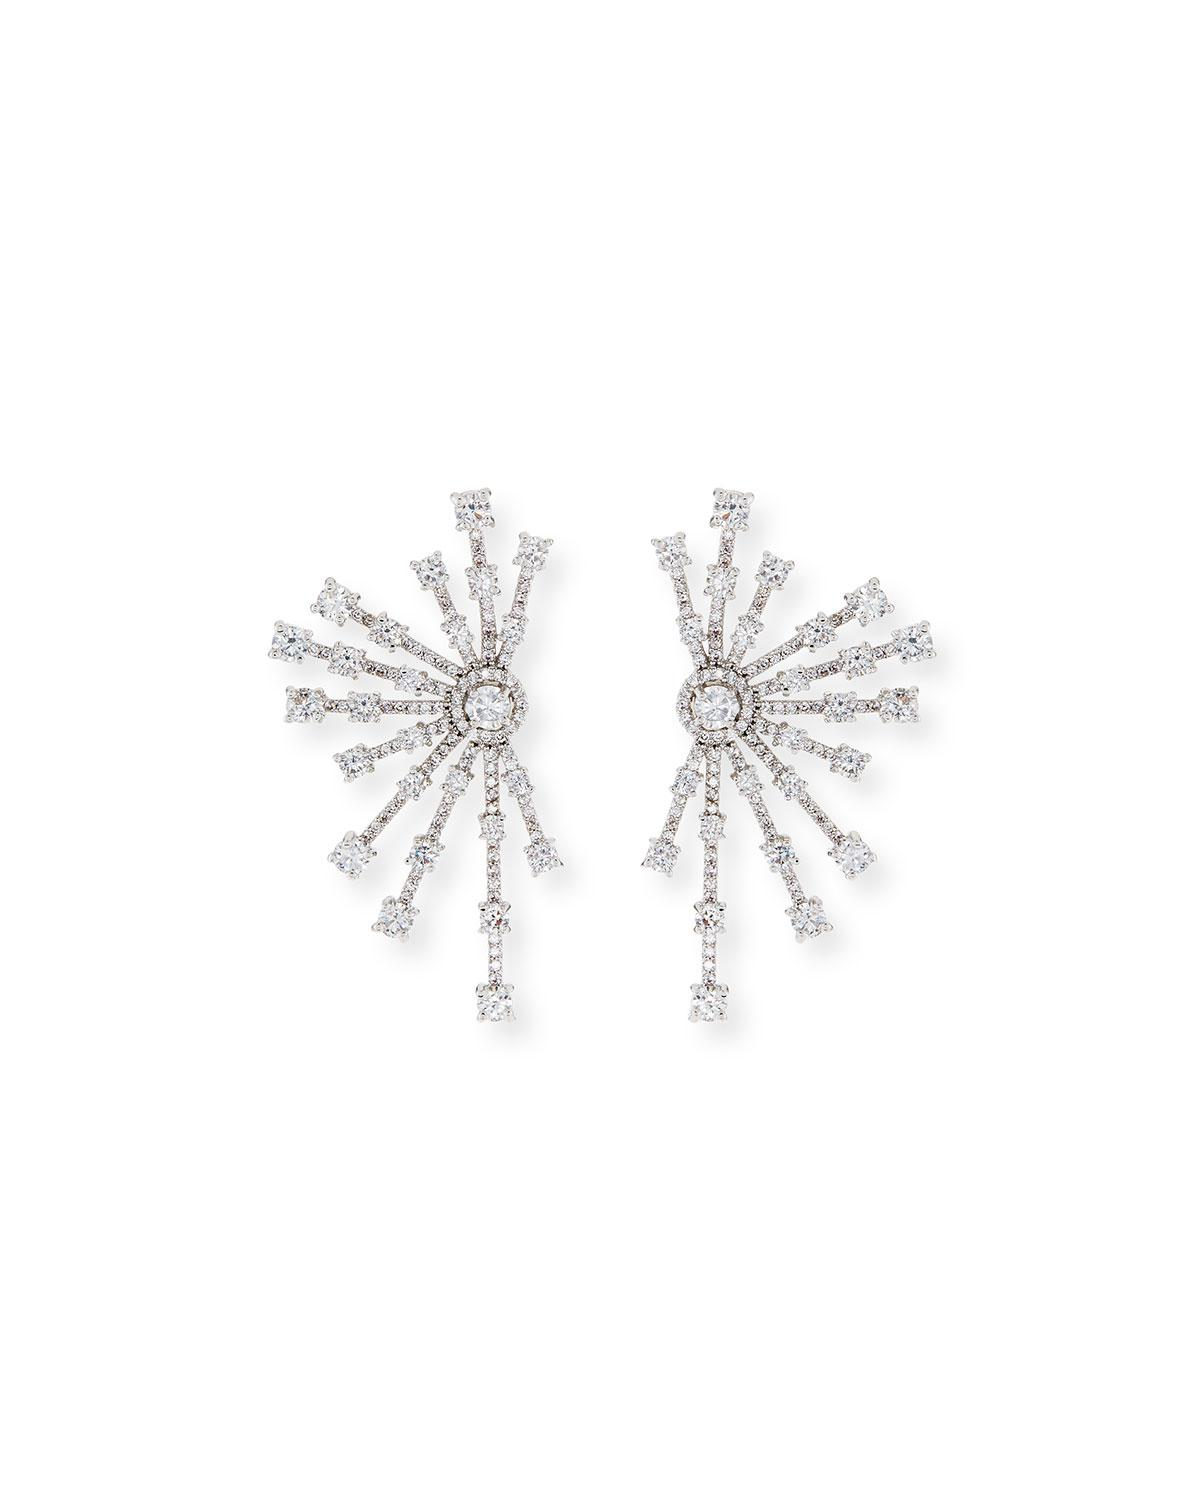 Fallon Monarch Crystal Pin Set ggg3e63Dt